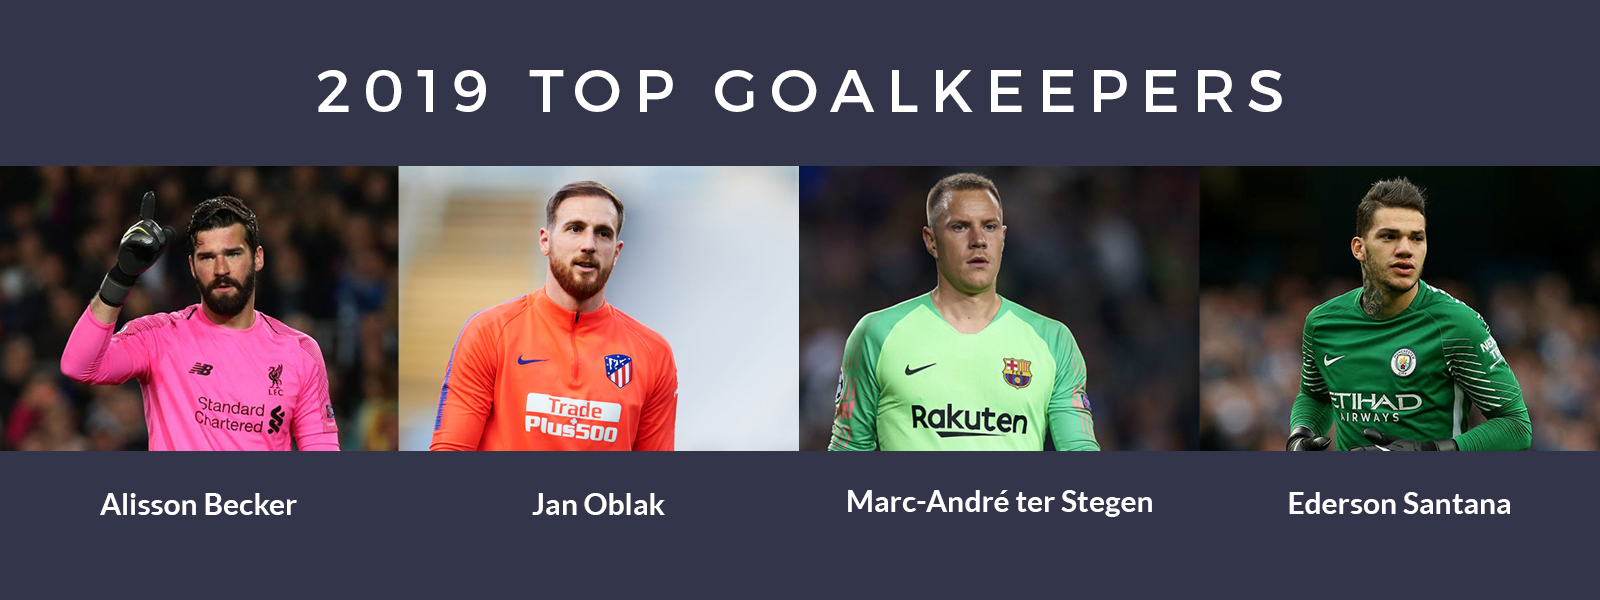 2019 World Top Goalkeepers